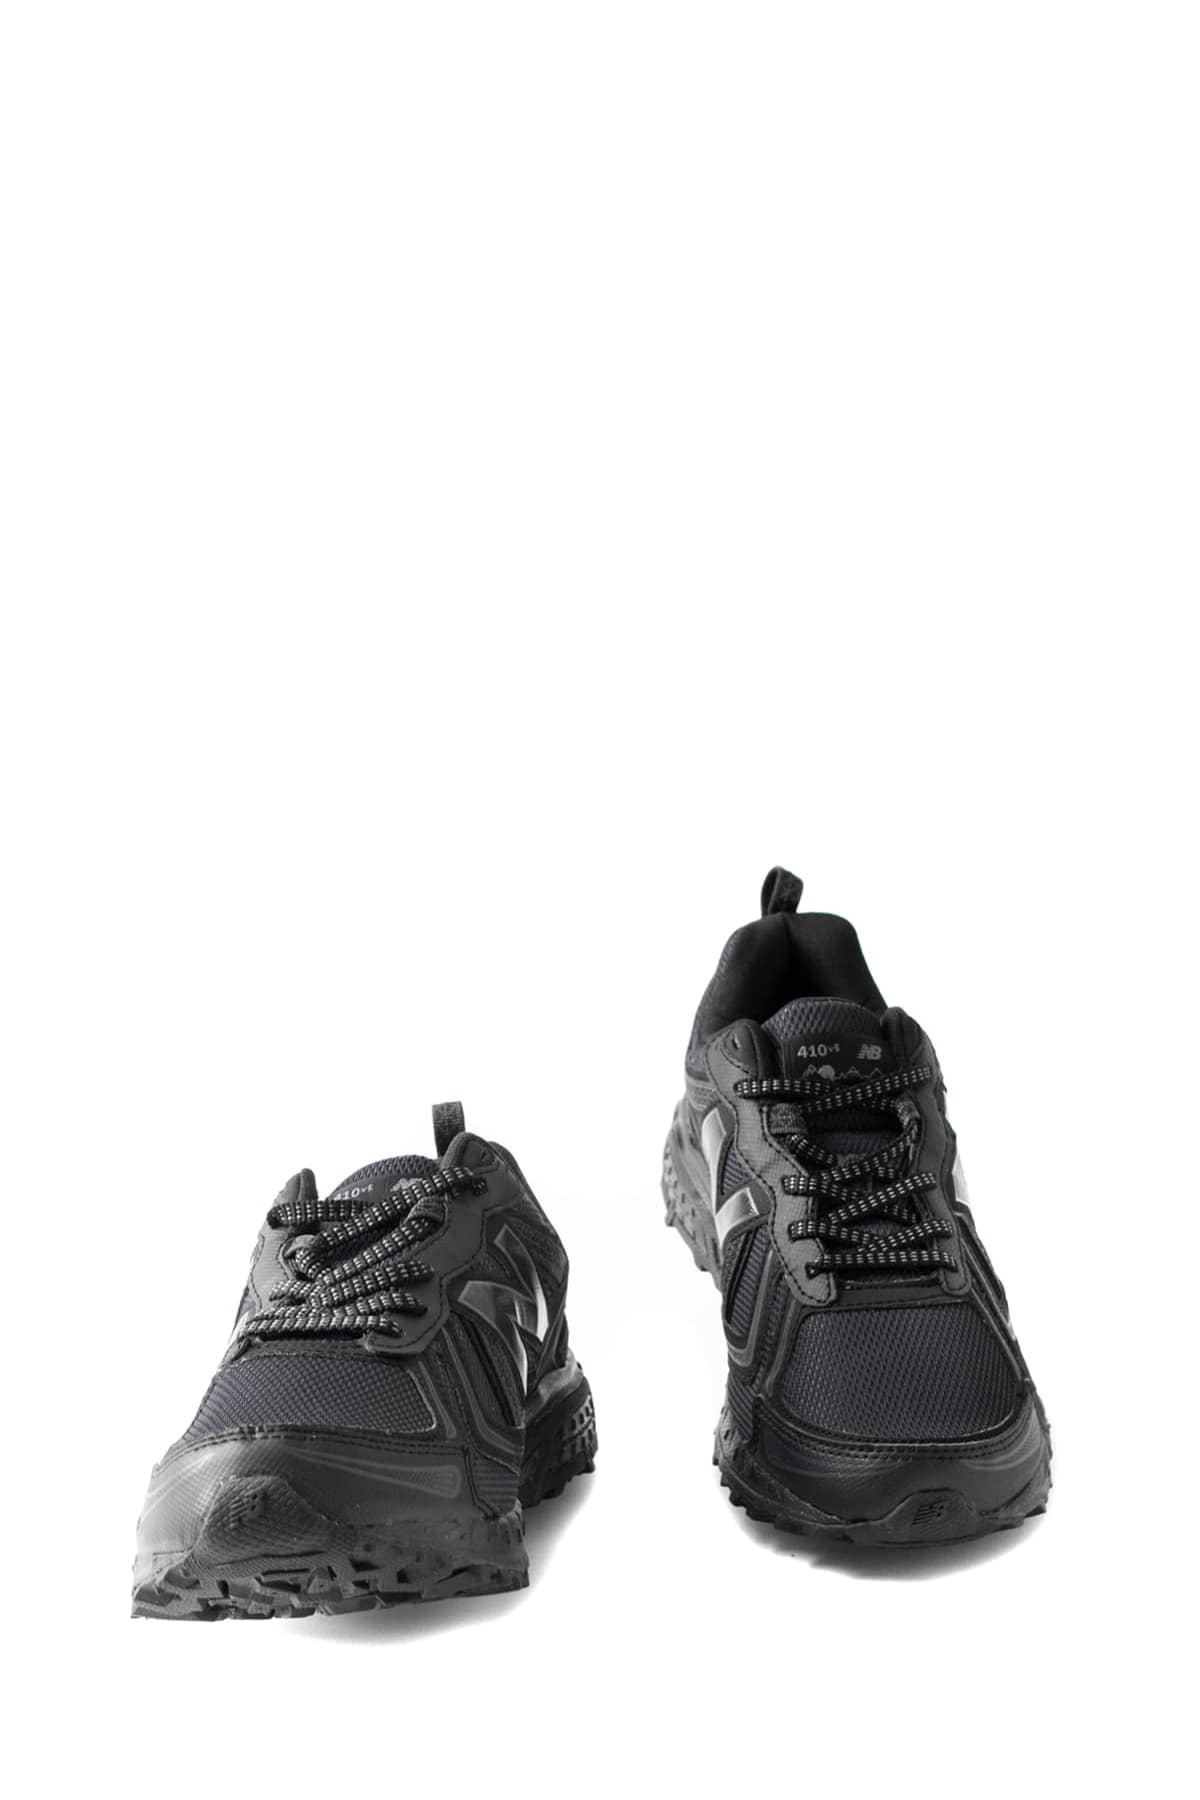 New Balance : MT410CK5 (Black)